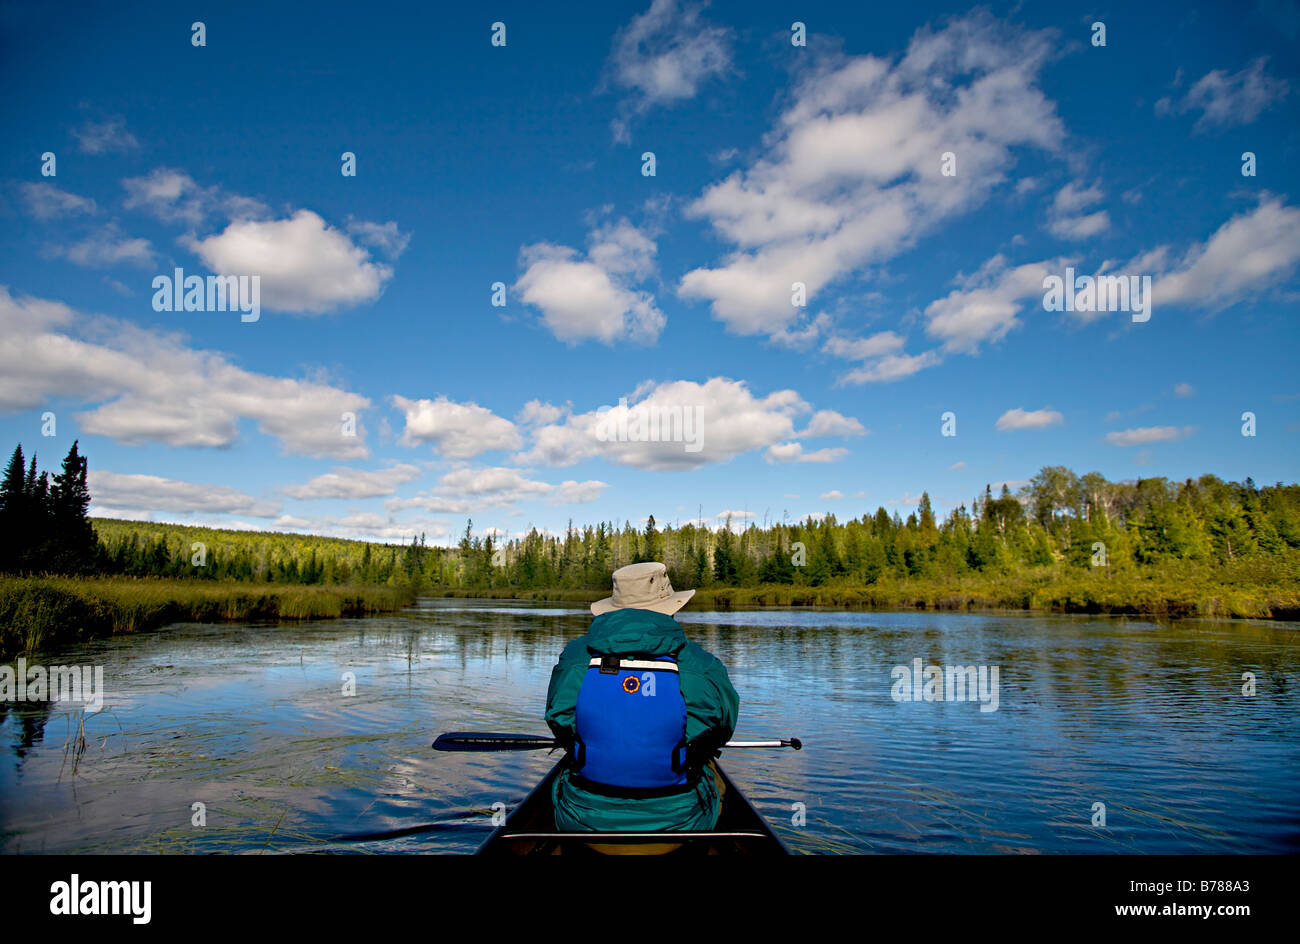 Canoeing to a new fishing spot in the Boundary Waters Canoe Area Wilderness in the Superior National Forest in Minnesota. - Stock Image